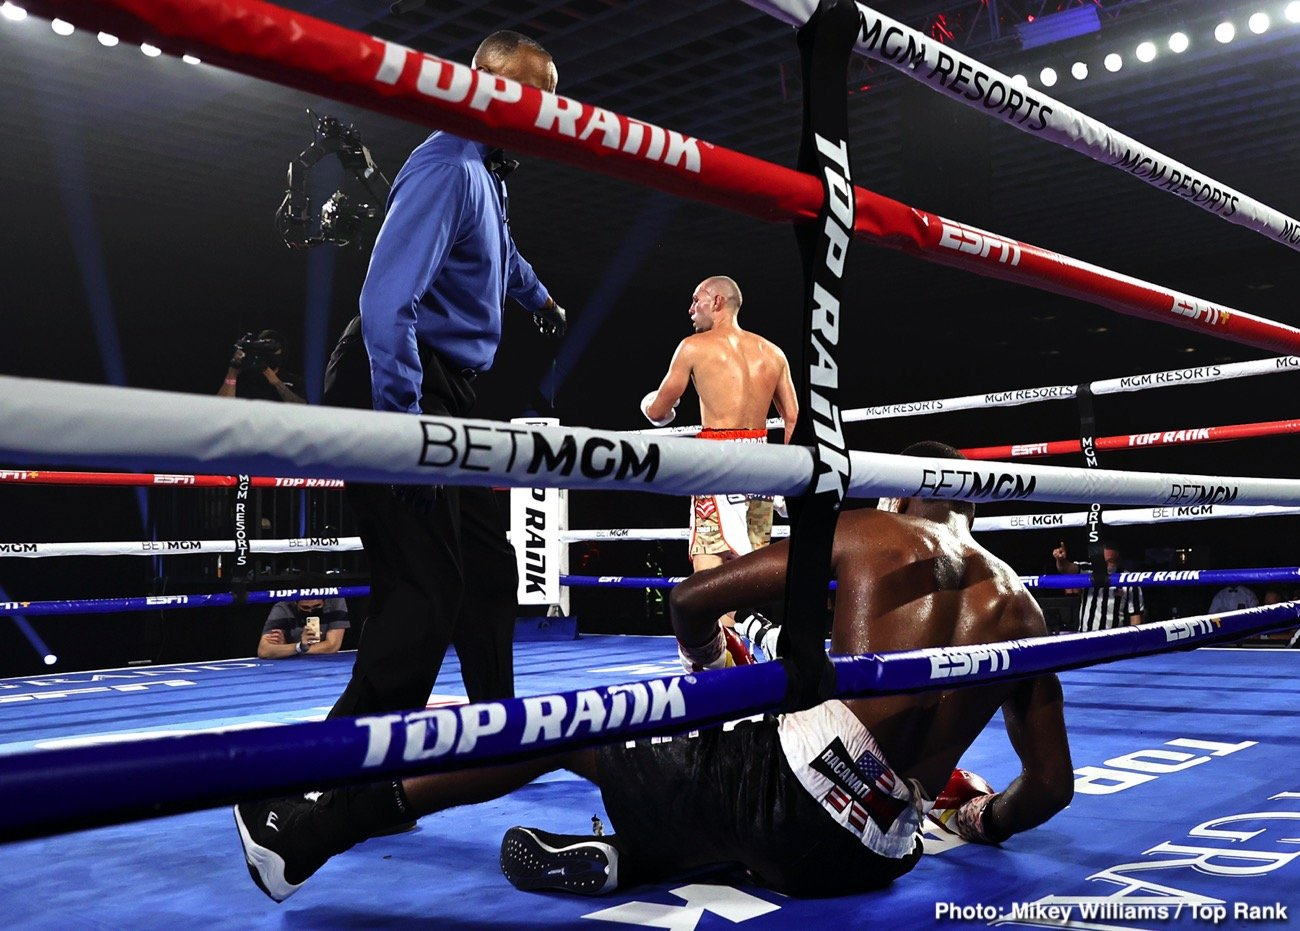 Jose Pedraza - Former two-weight world champion Jose Pedraza's quest for a title in a third weight class is alive and well. Pedraza, from Cidra, Puerto Rico, toppled Mikkel LesPierre via unanimous decision (100-88 and 99-89 2x) Thursday night in a junior welterweight bout.